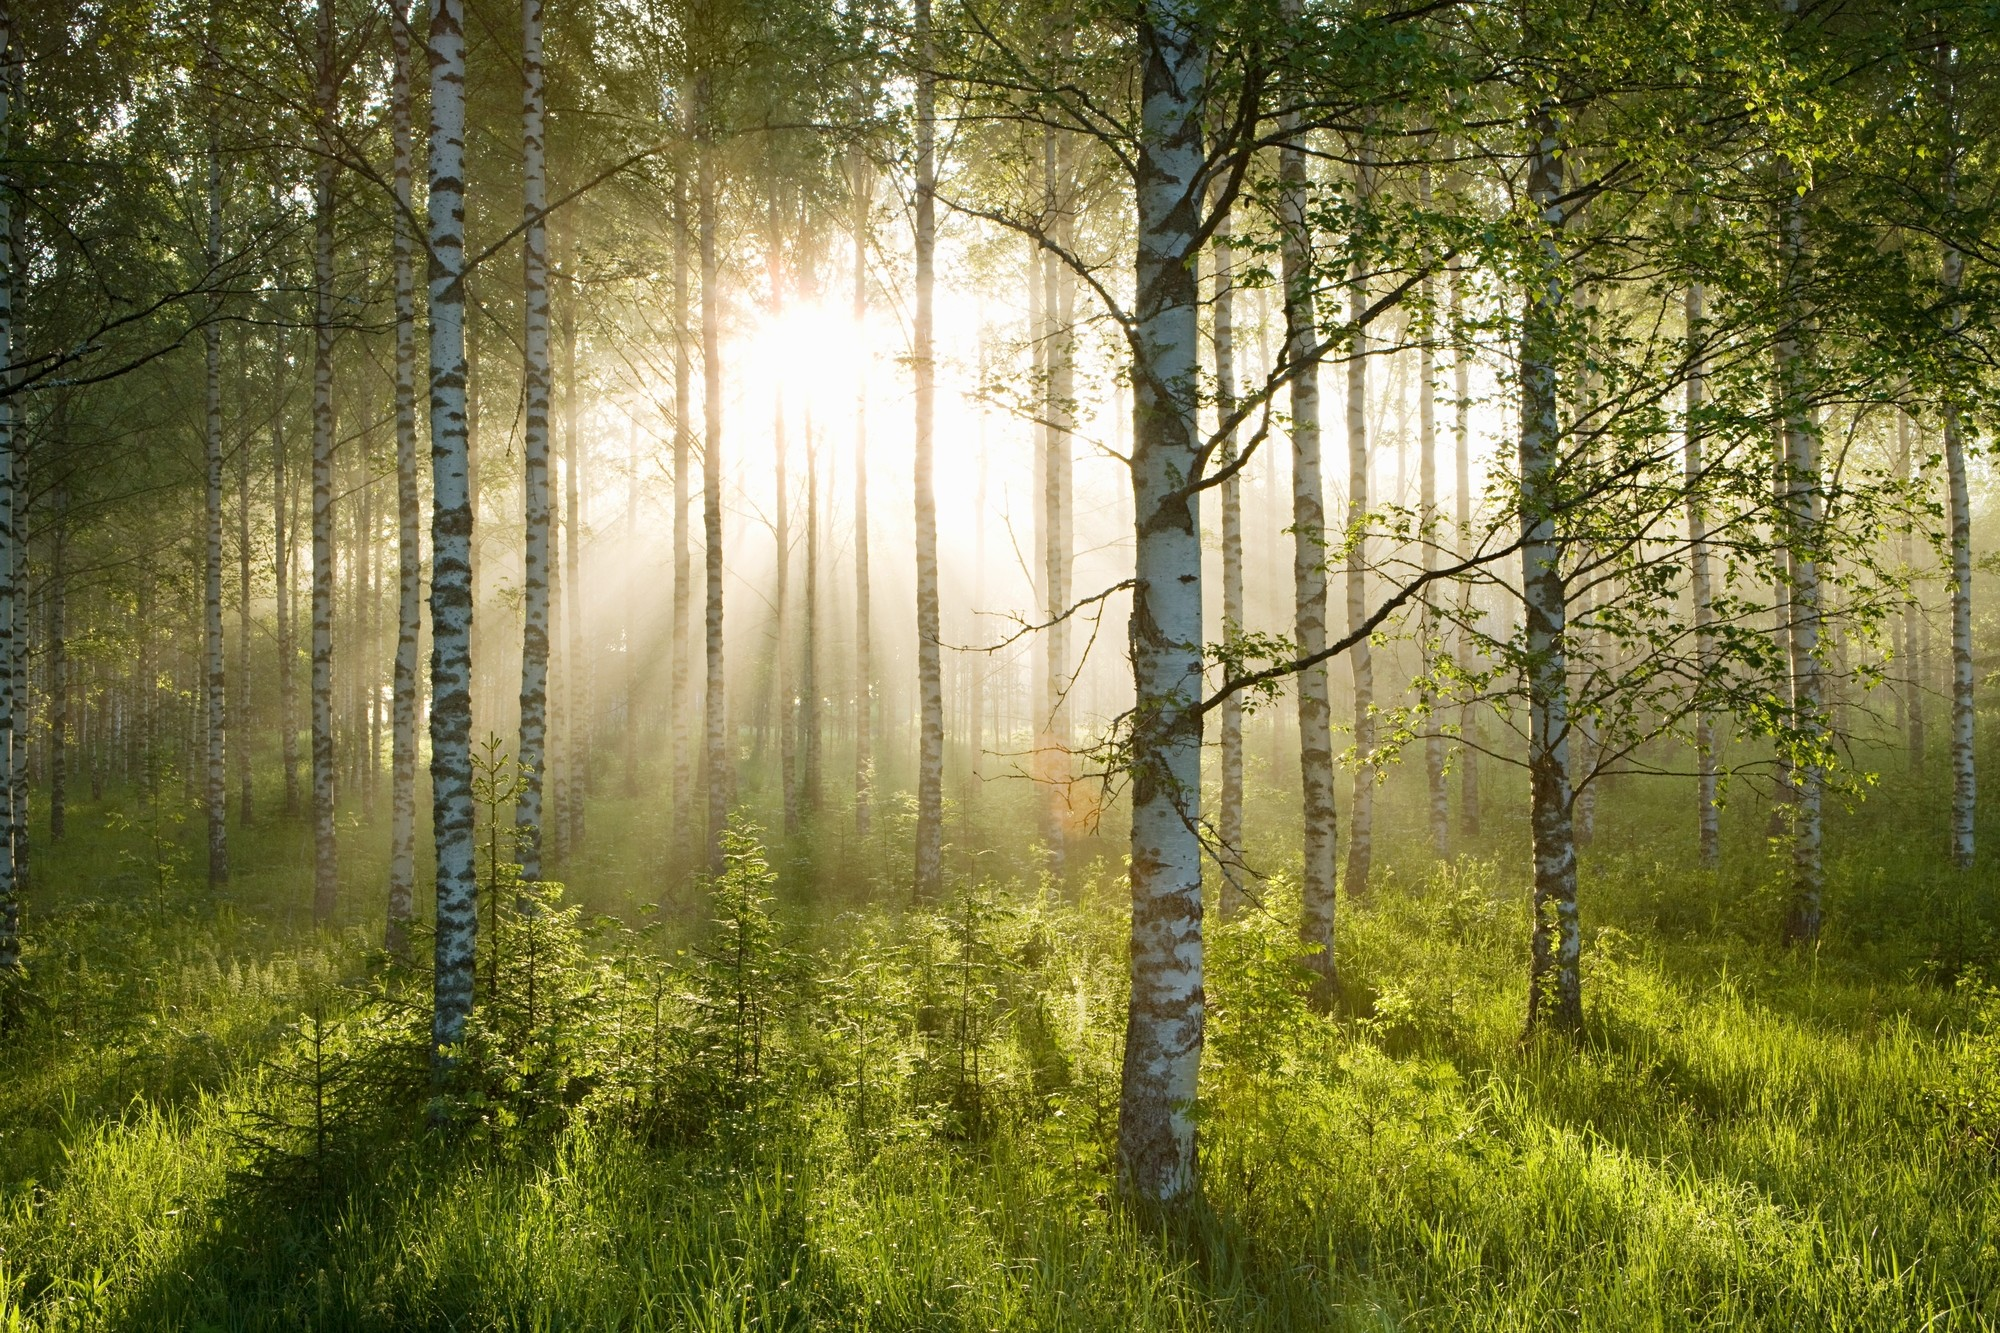 2000x1333 Birch Forest Sunlight Wall Mural Photo Wallpaper